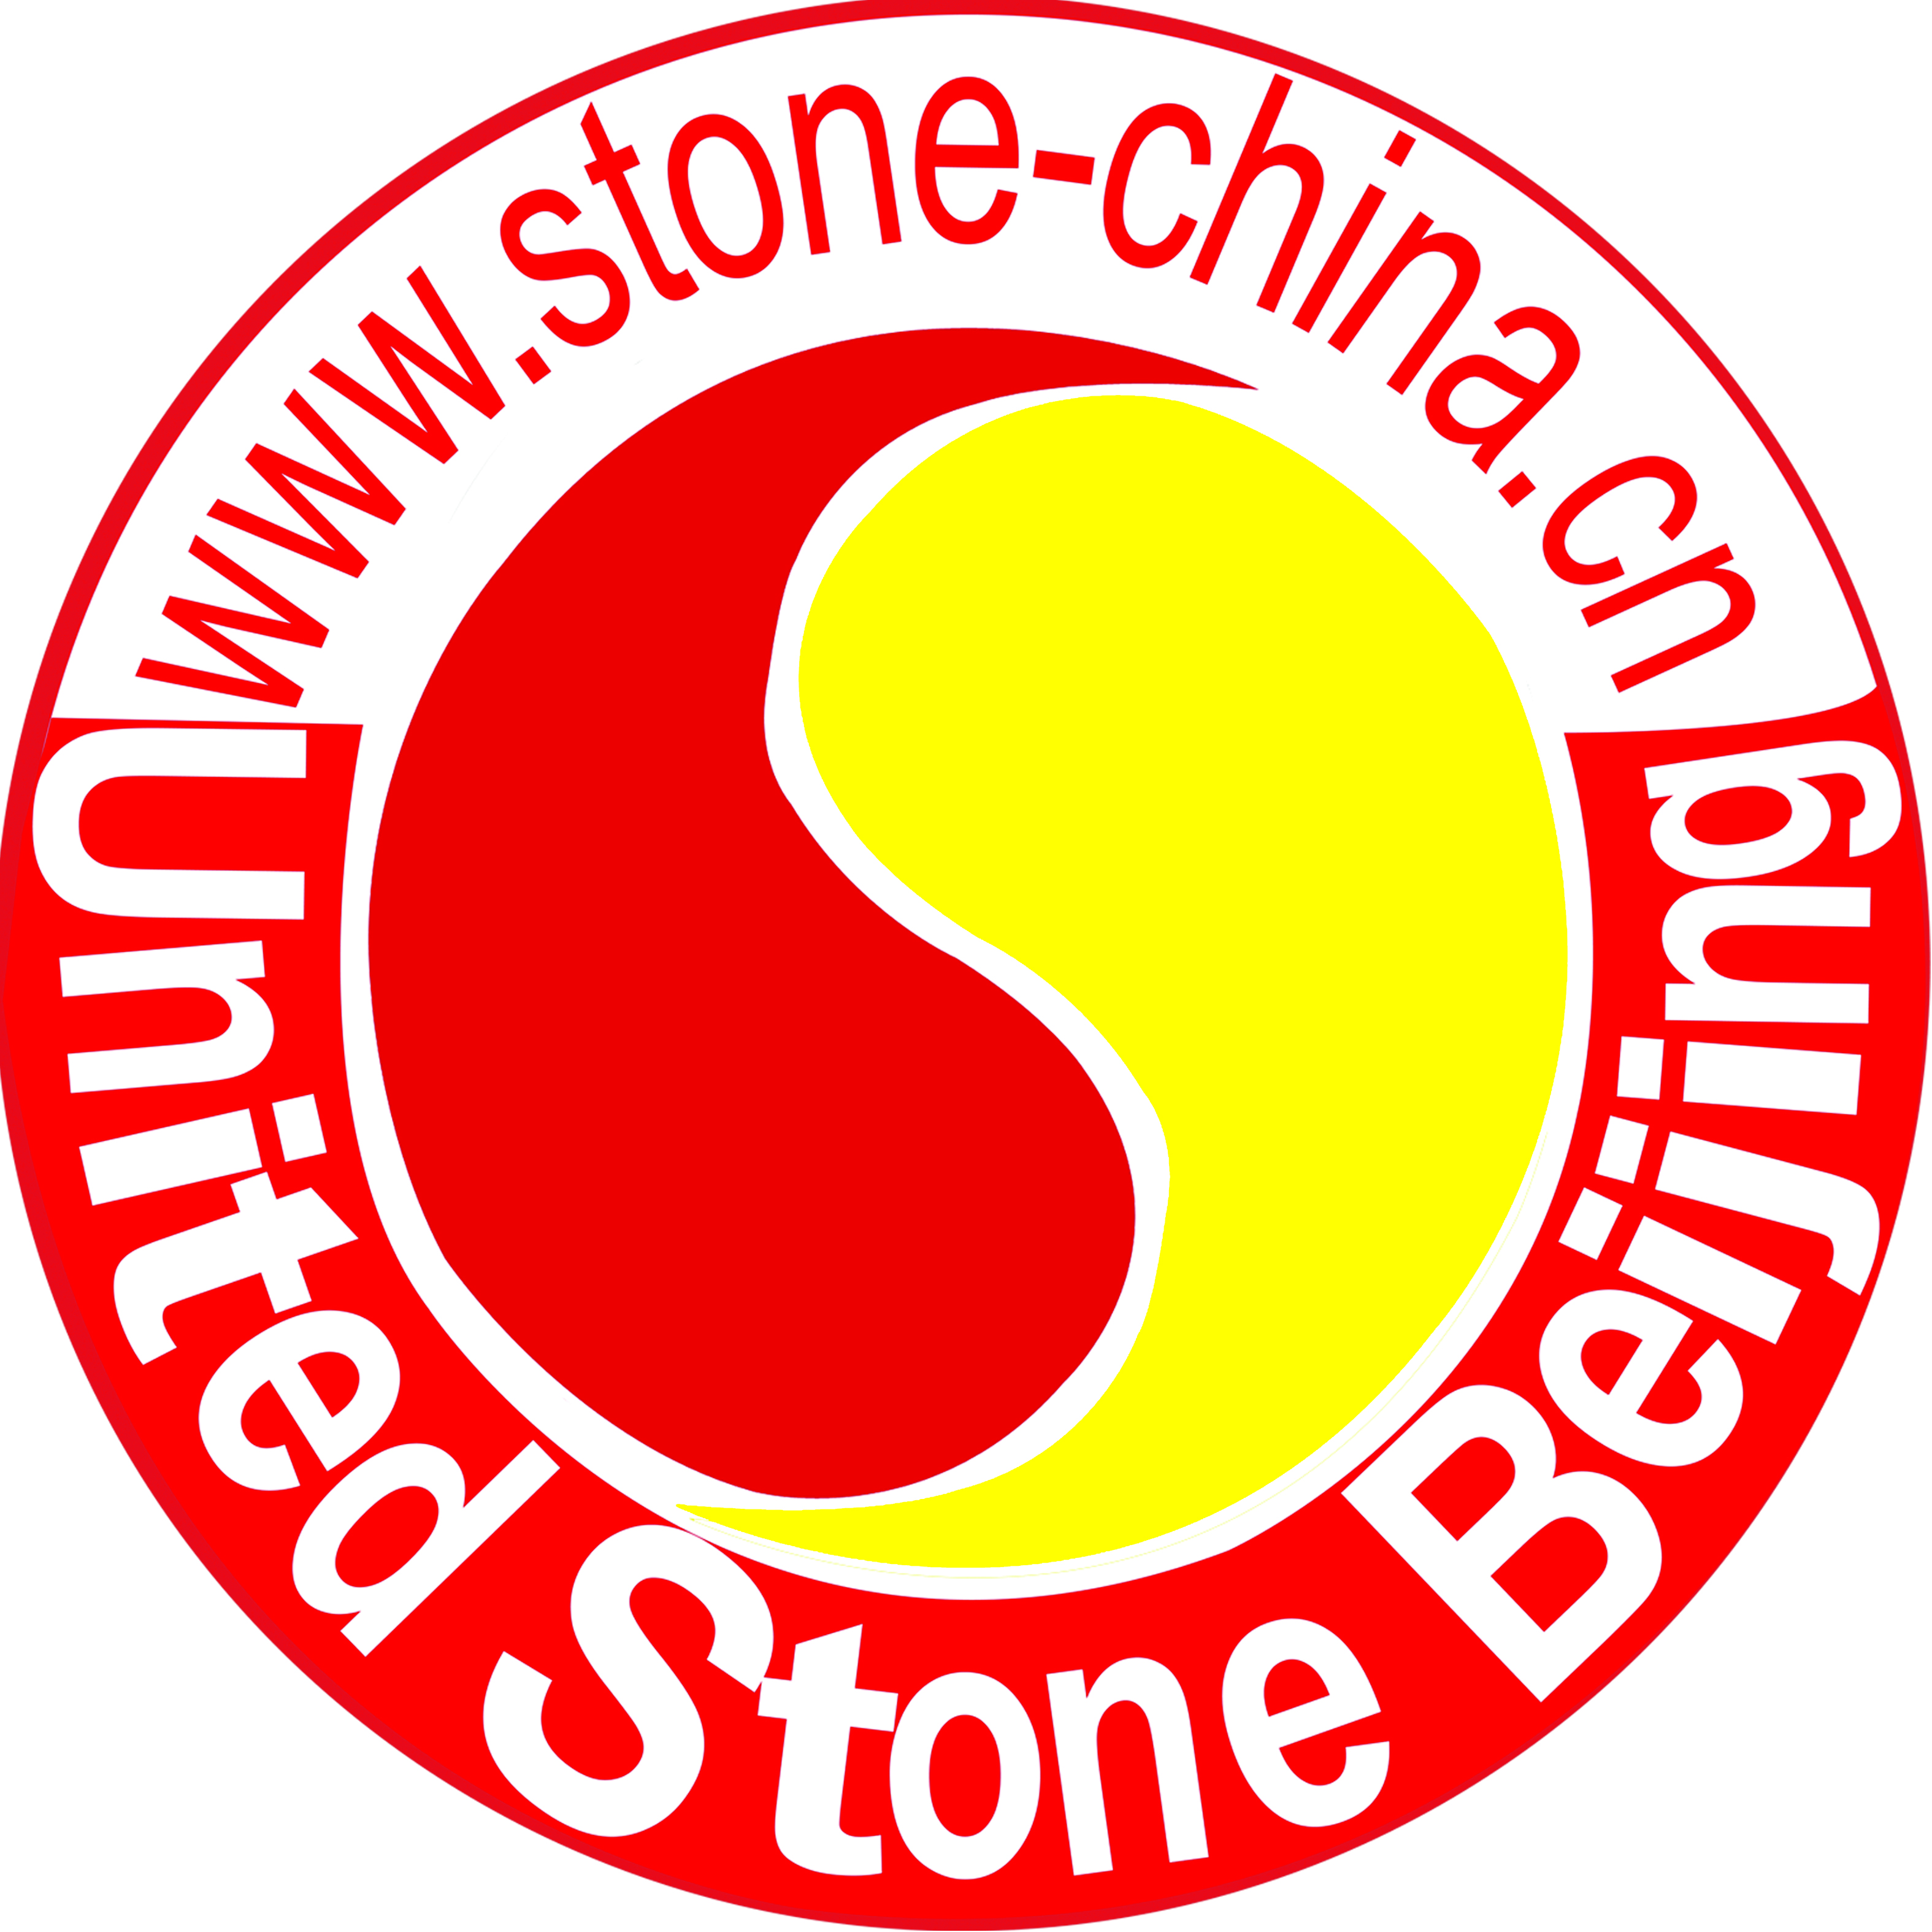 United Stone Beijing Co.,Ltd.